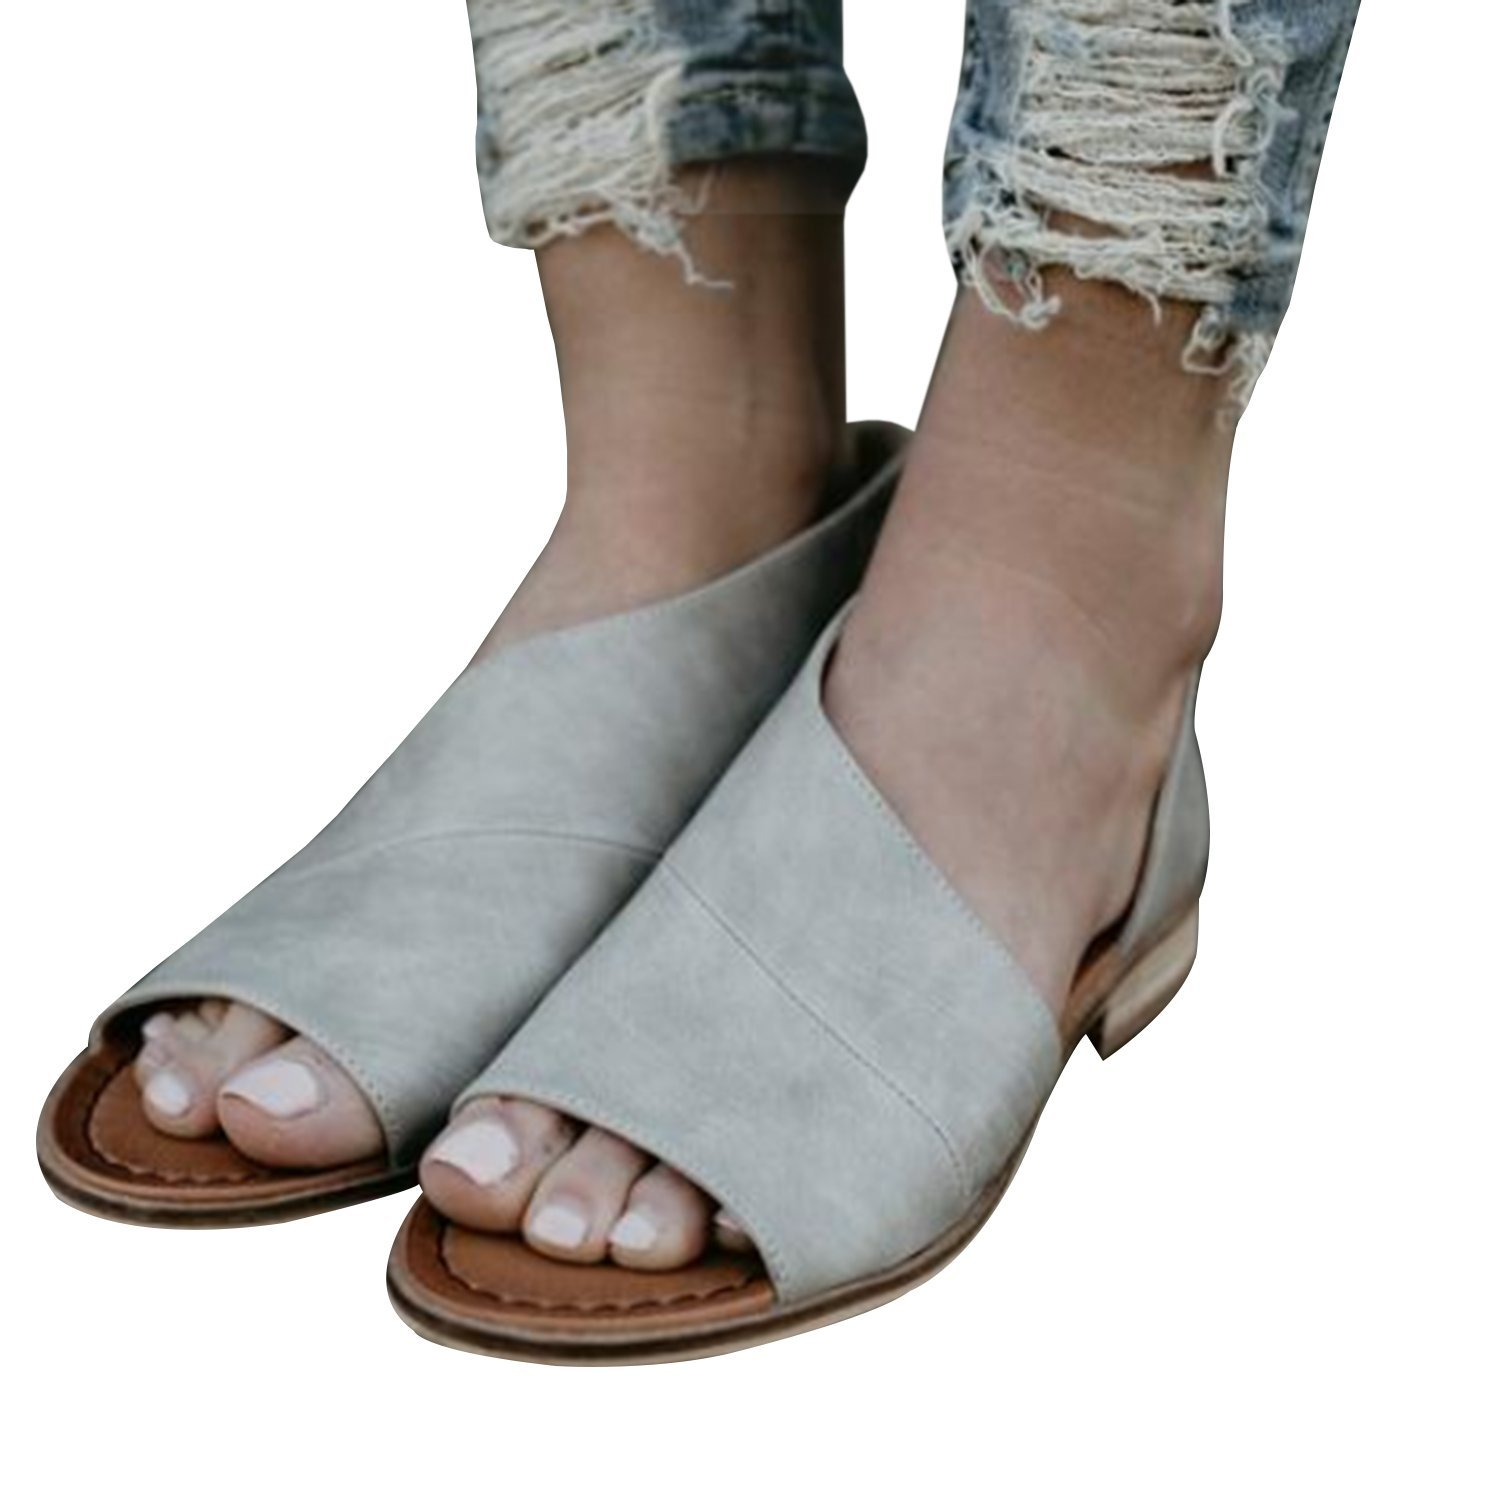 Women Casual D'orsay Open-toe Flats Slip-On Cut Out Asymmetrical Sandal Low Heel Shoes by SySea (Image #2)